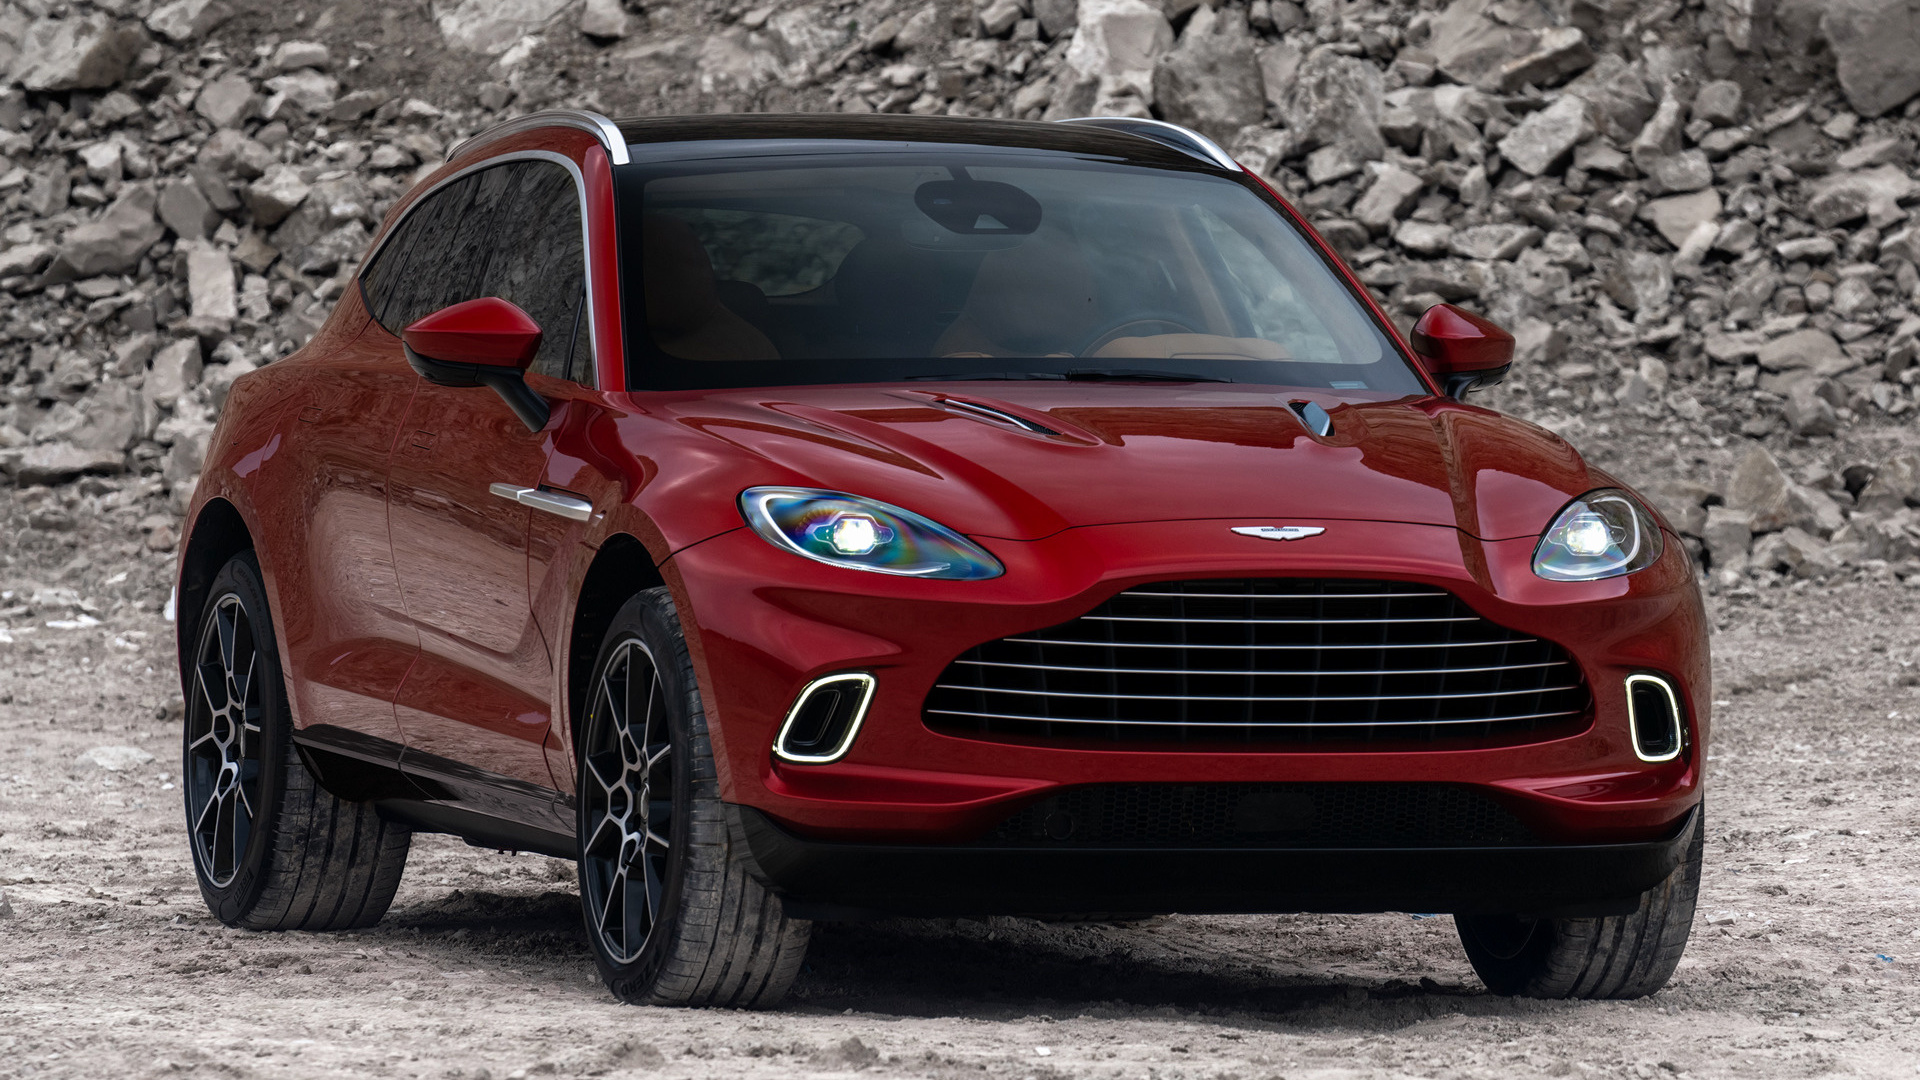 2020 Aston Martin Dbx Wallpapers And Hd Images Car Pixel